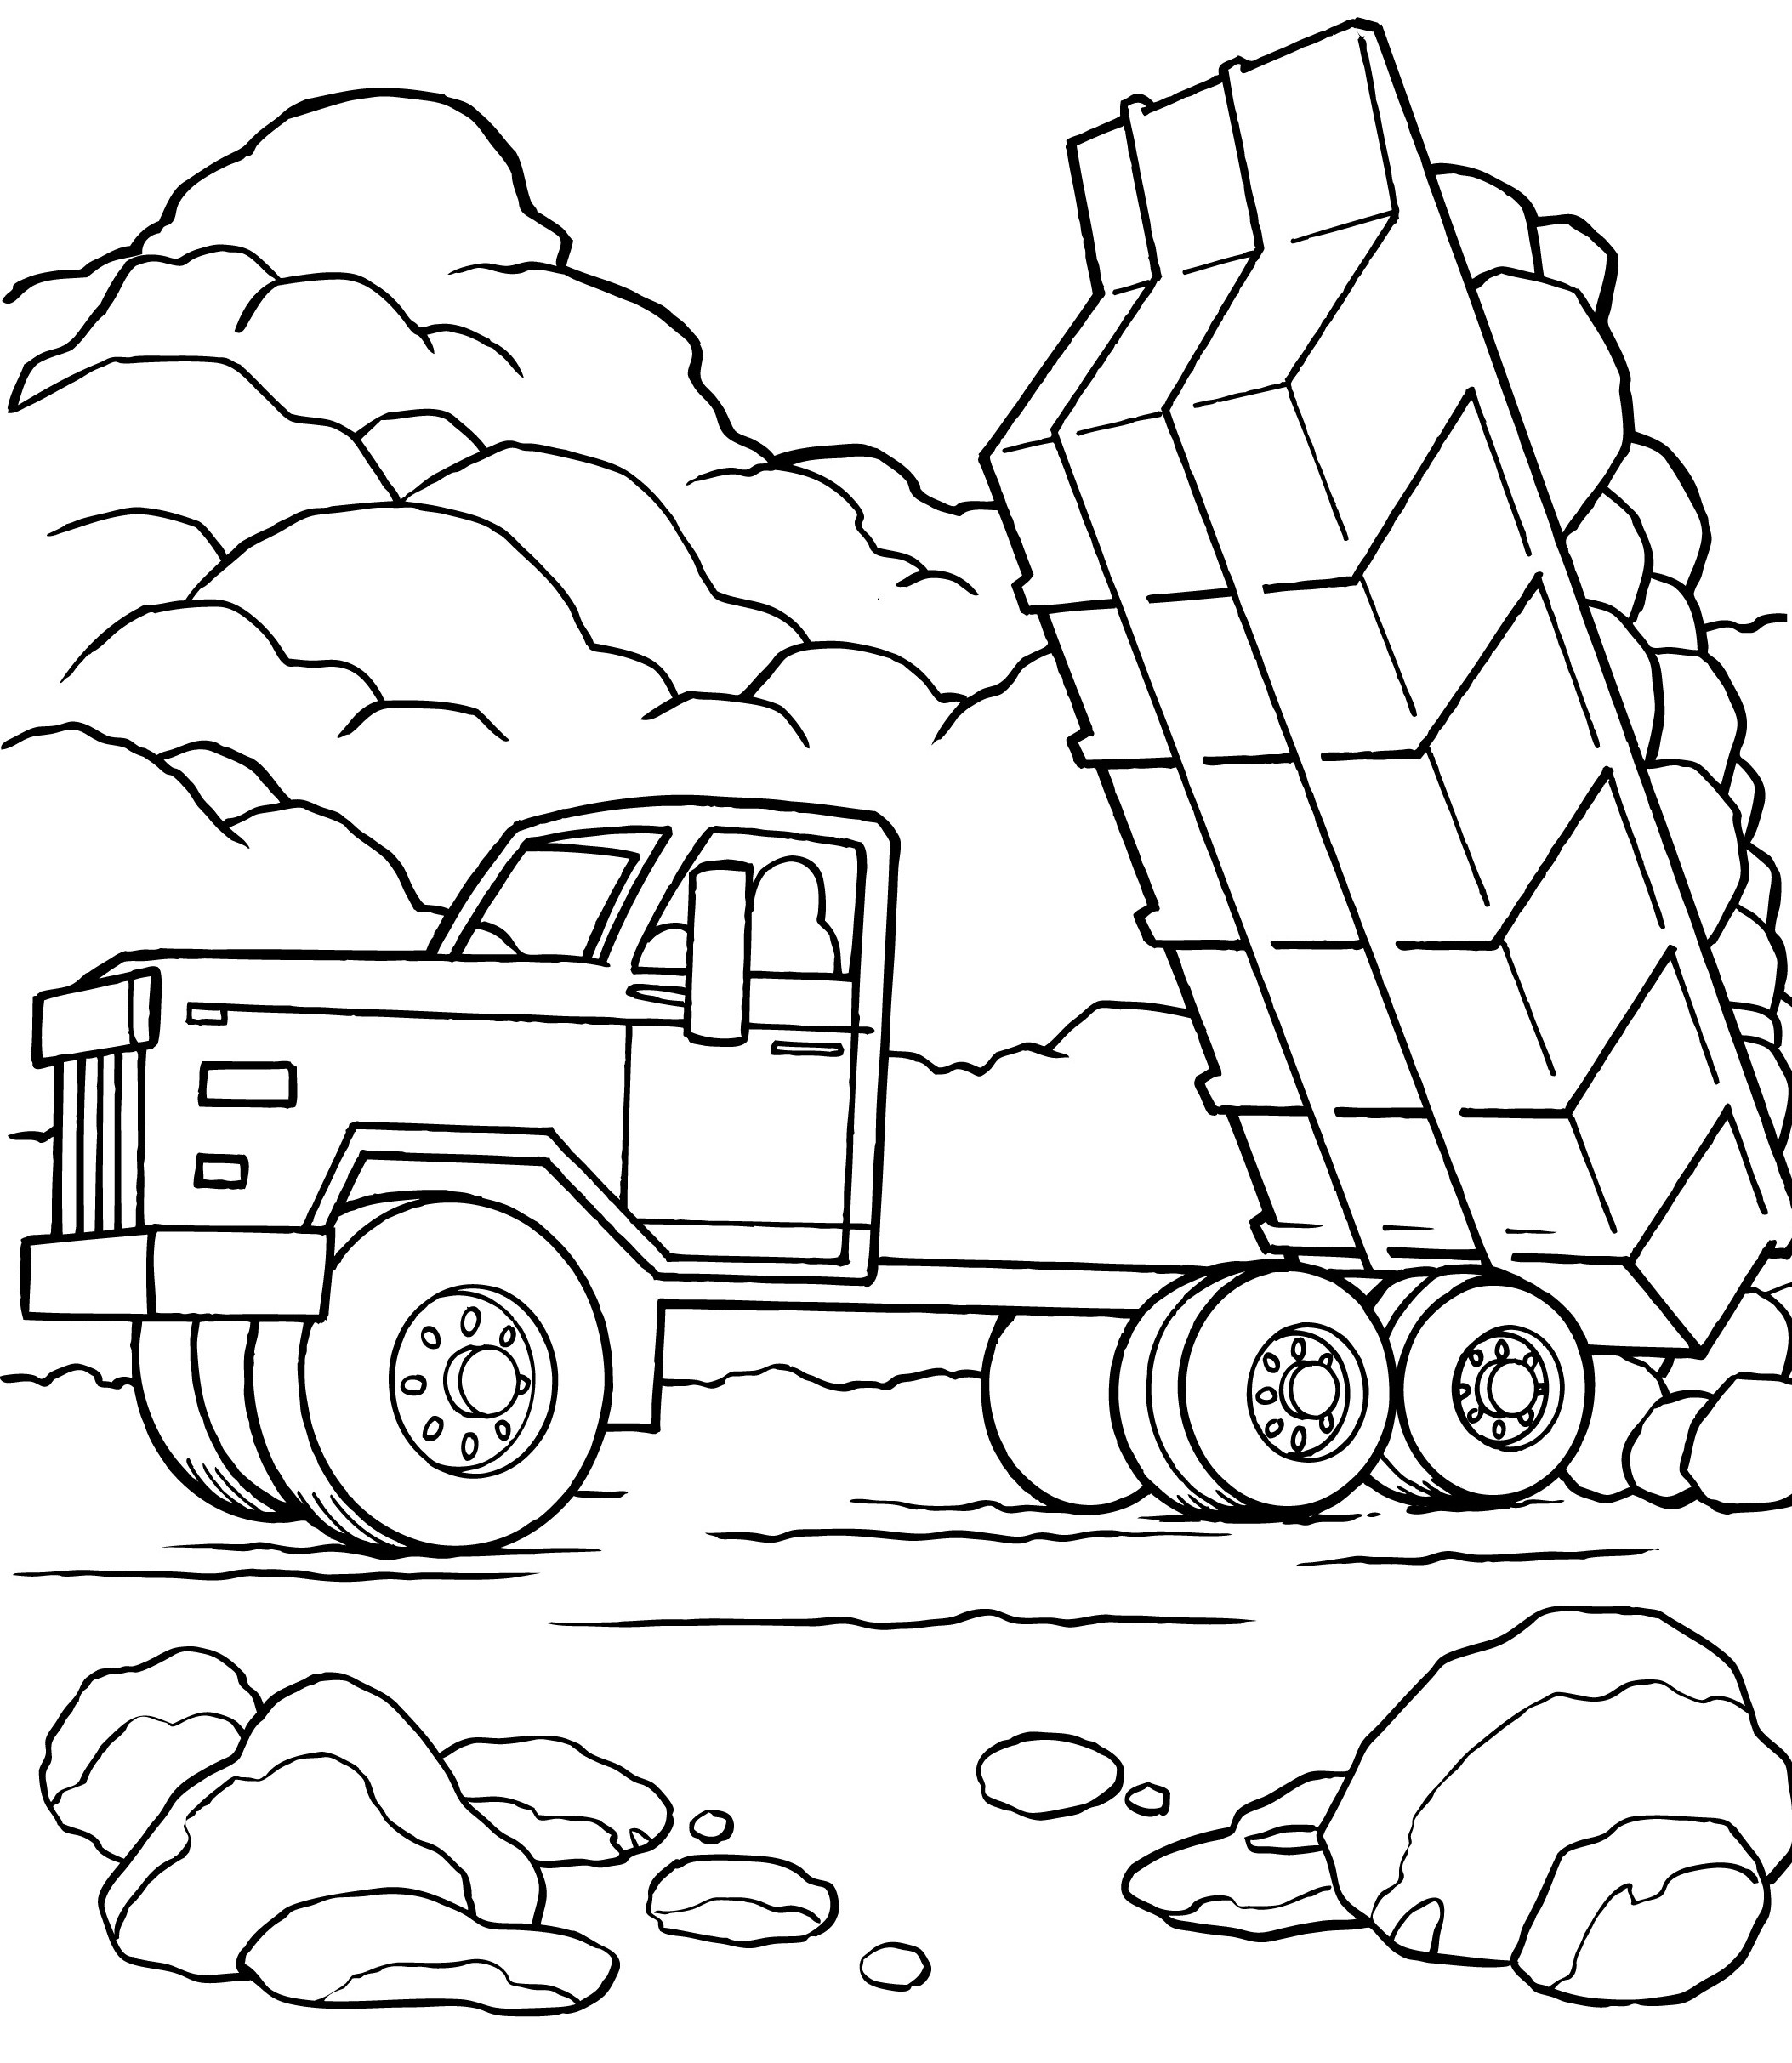 dump truck coloring pages online - photo#8